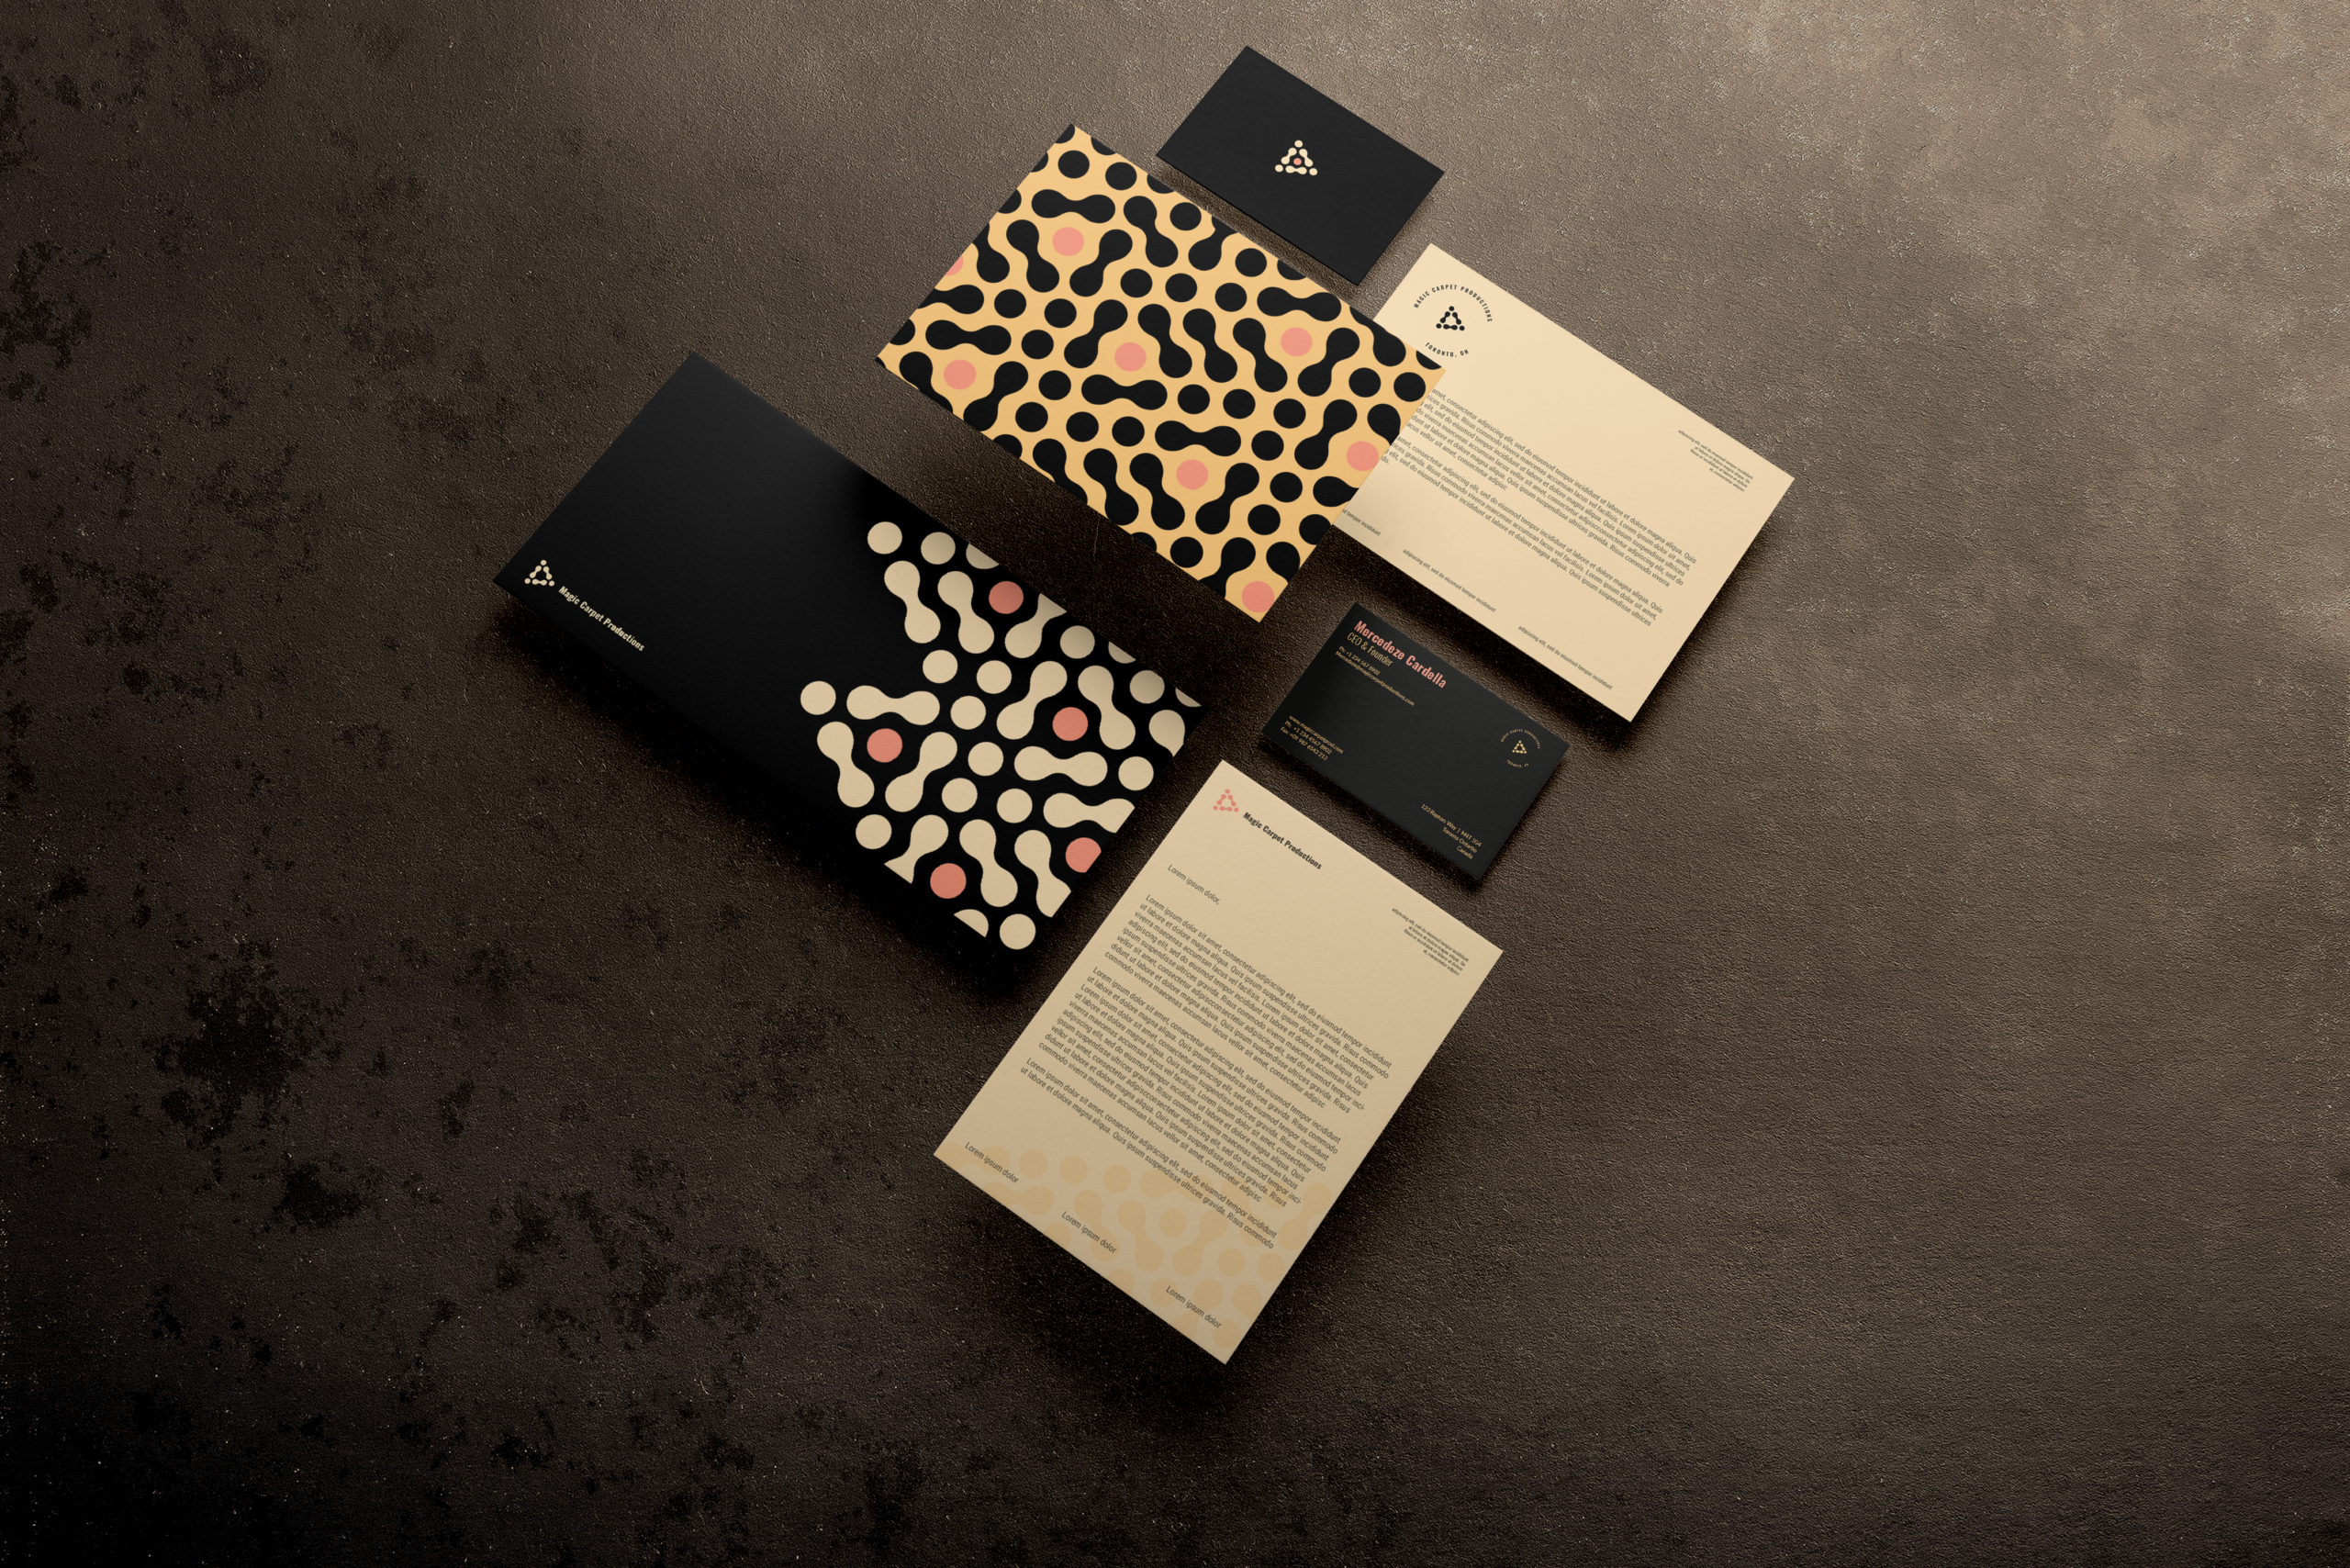 Branding Collateral created for Magic Carpet Productions by Ace Digital